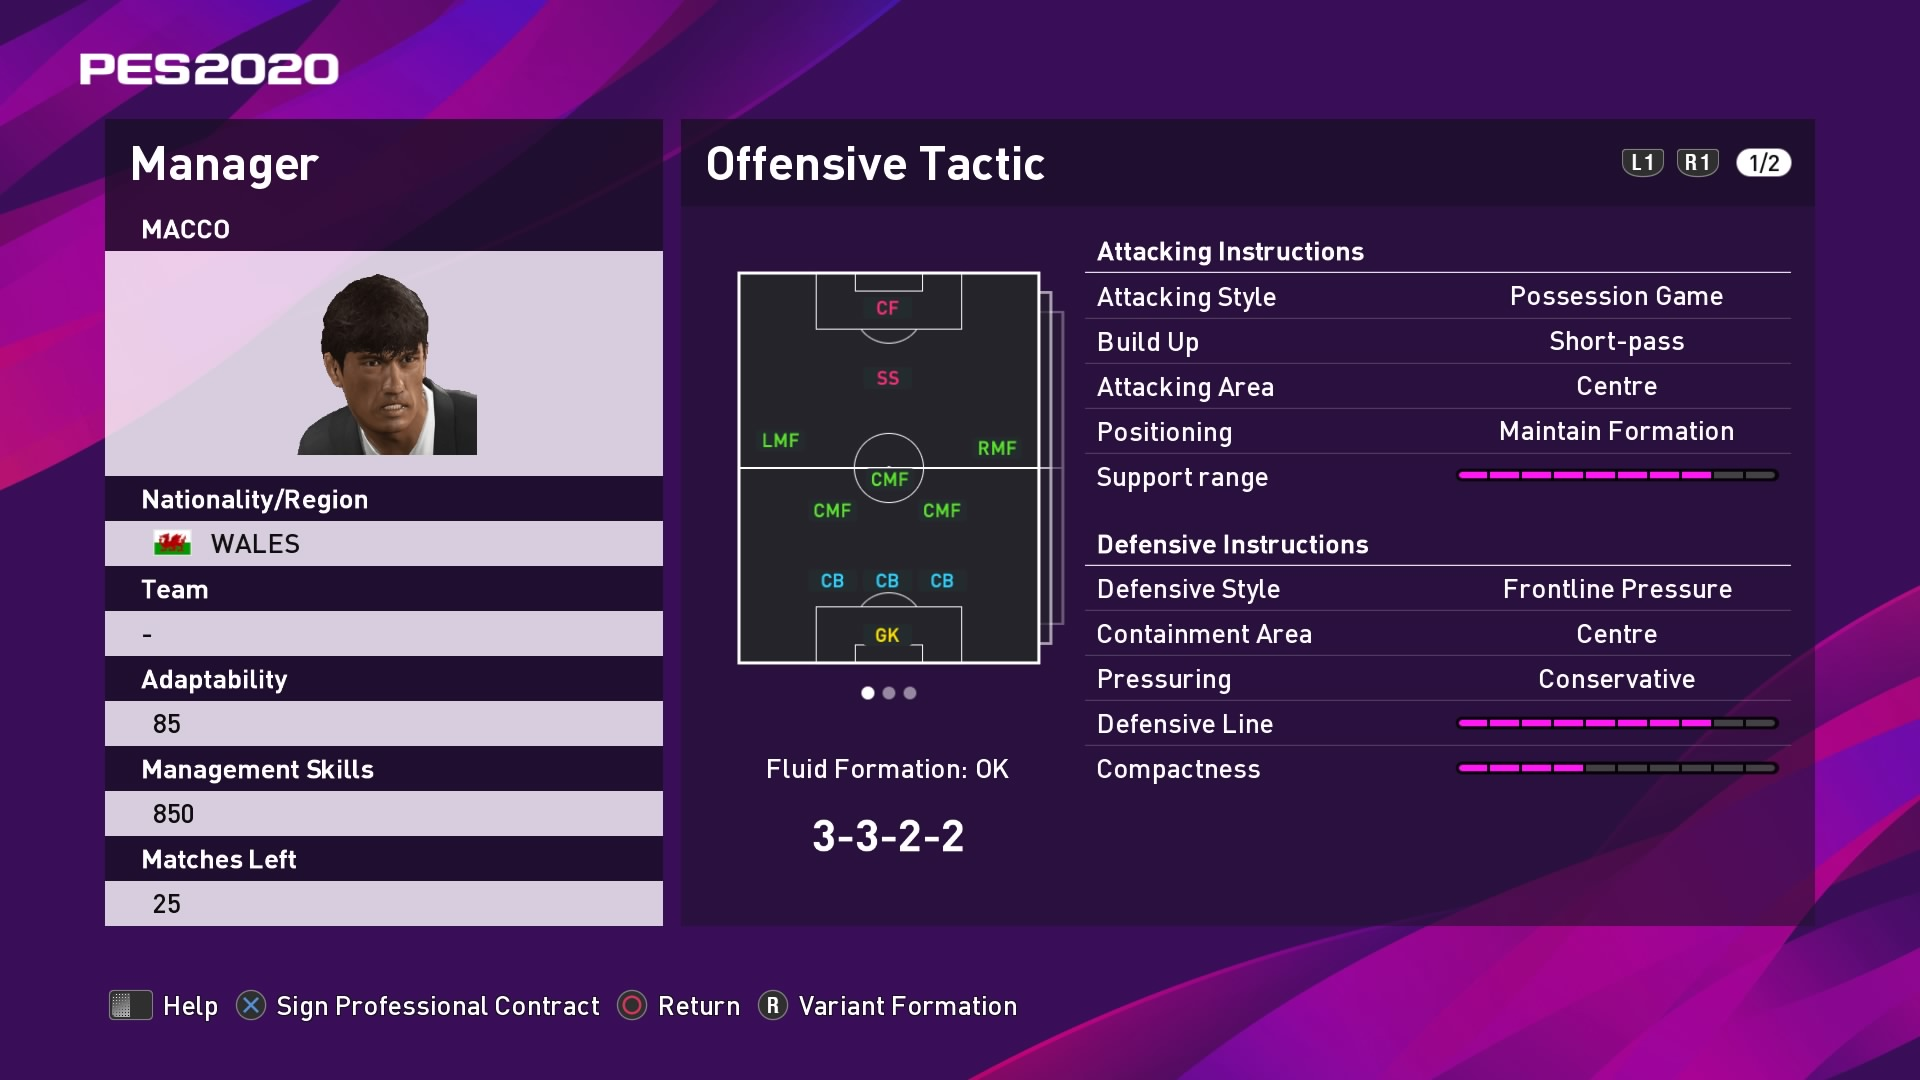 Macco Offensive Tactic at Kick-off